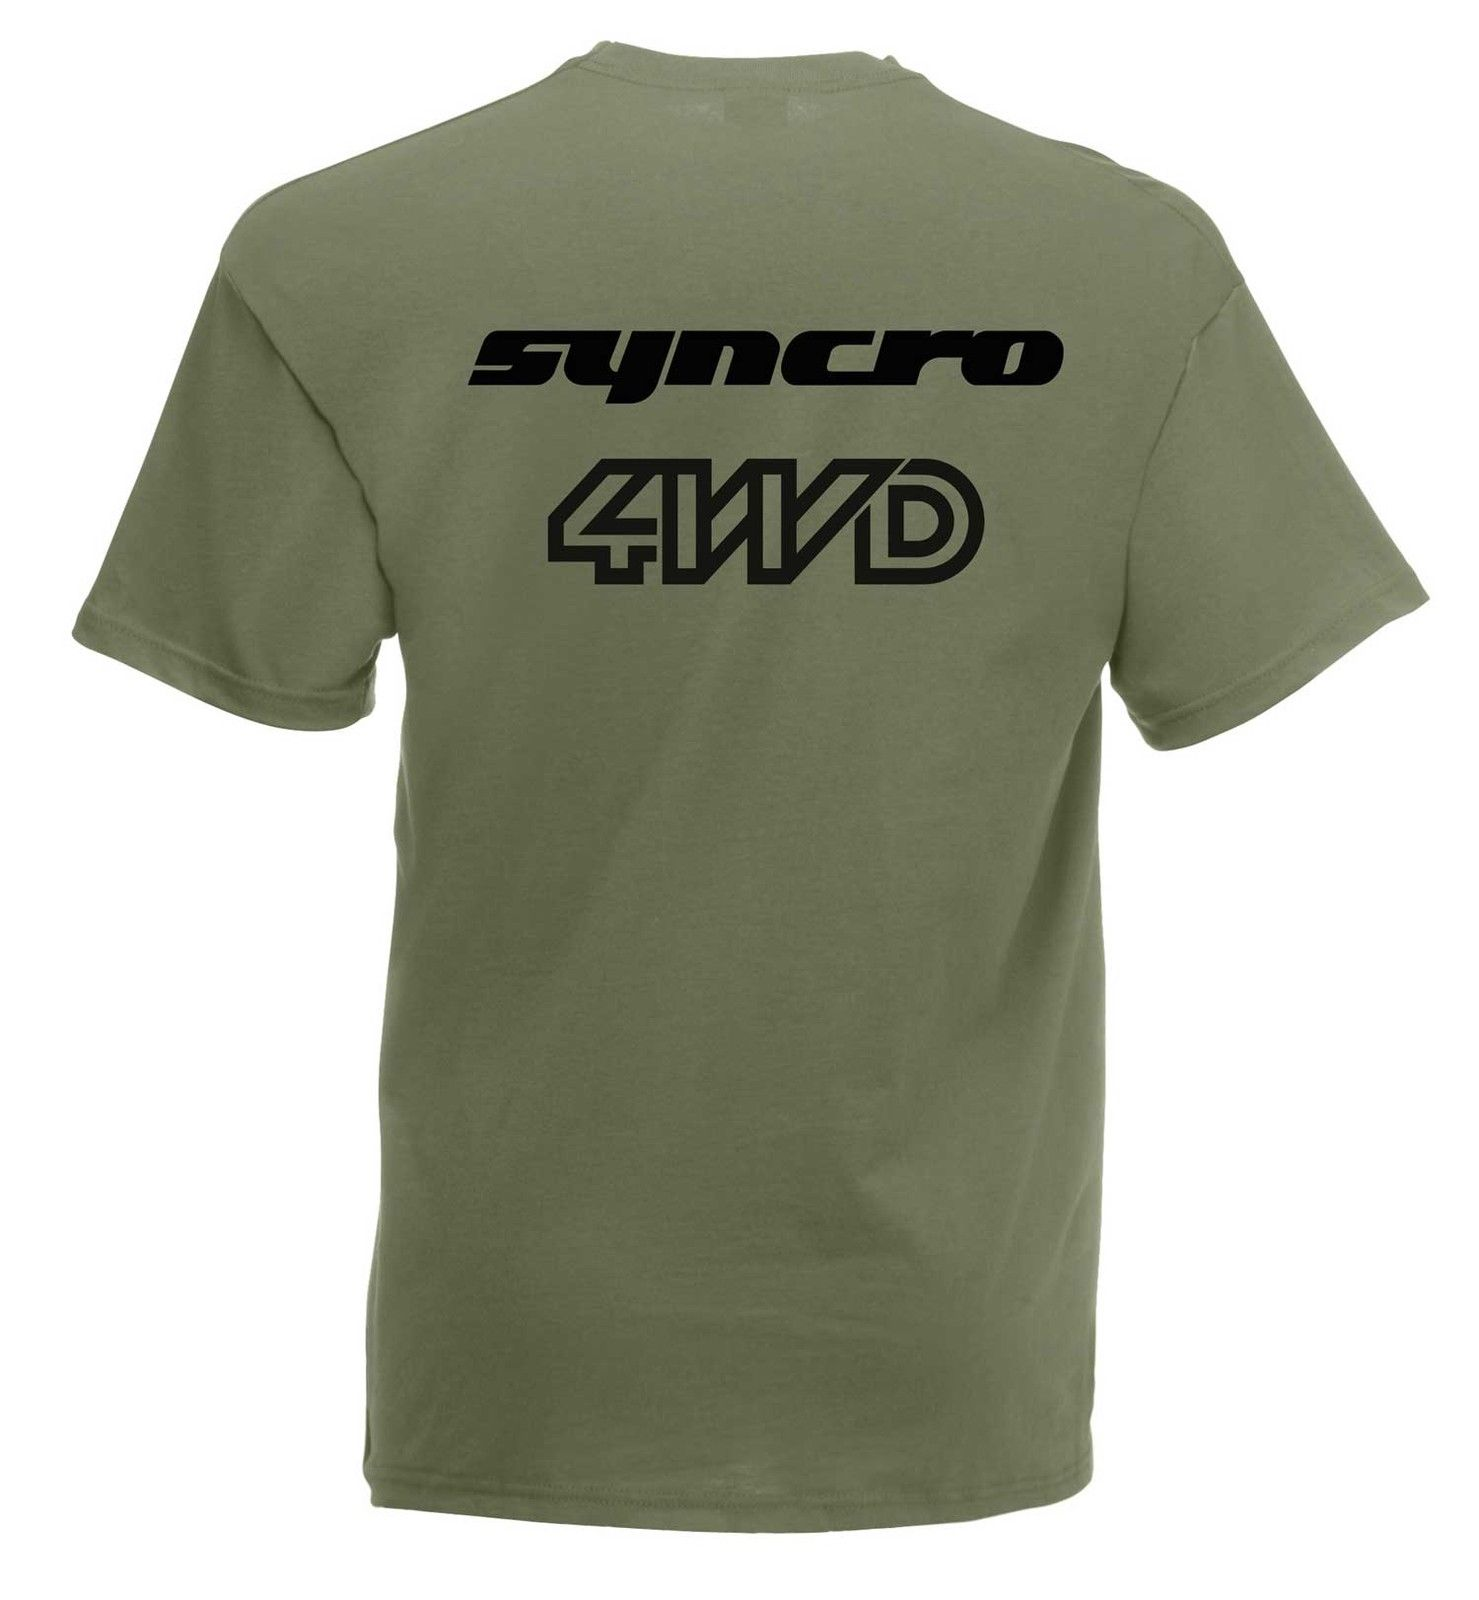 Vw camper syncro 4wd graphic high quality 100 cotton t for Good quality cotton t shirts